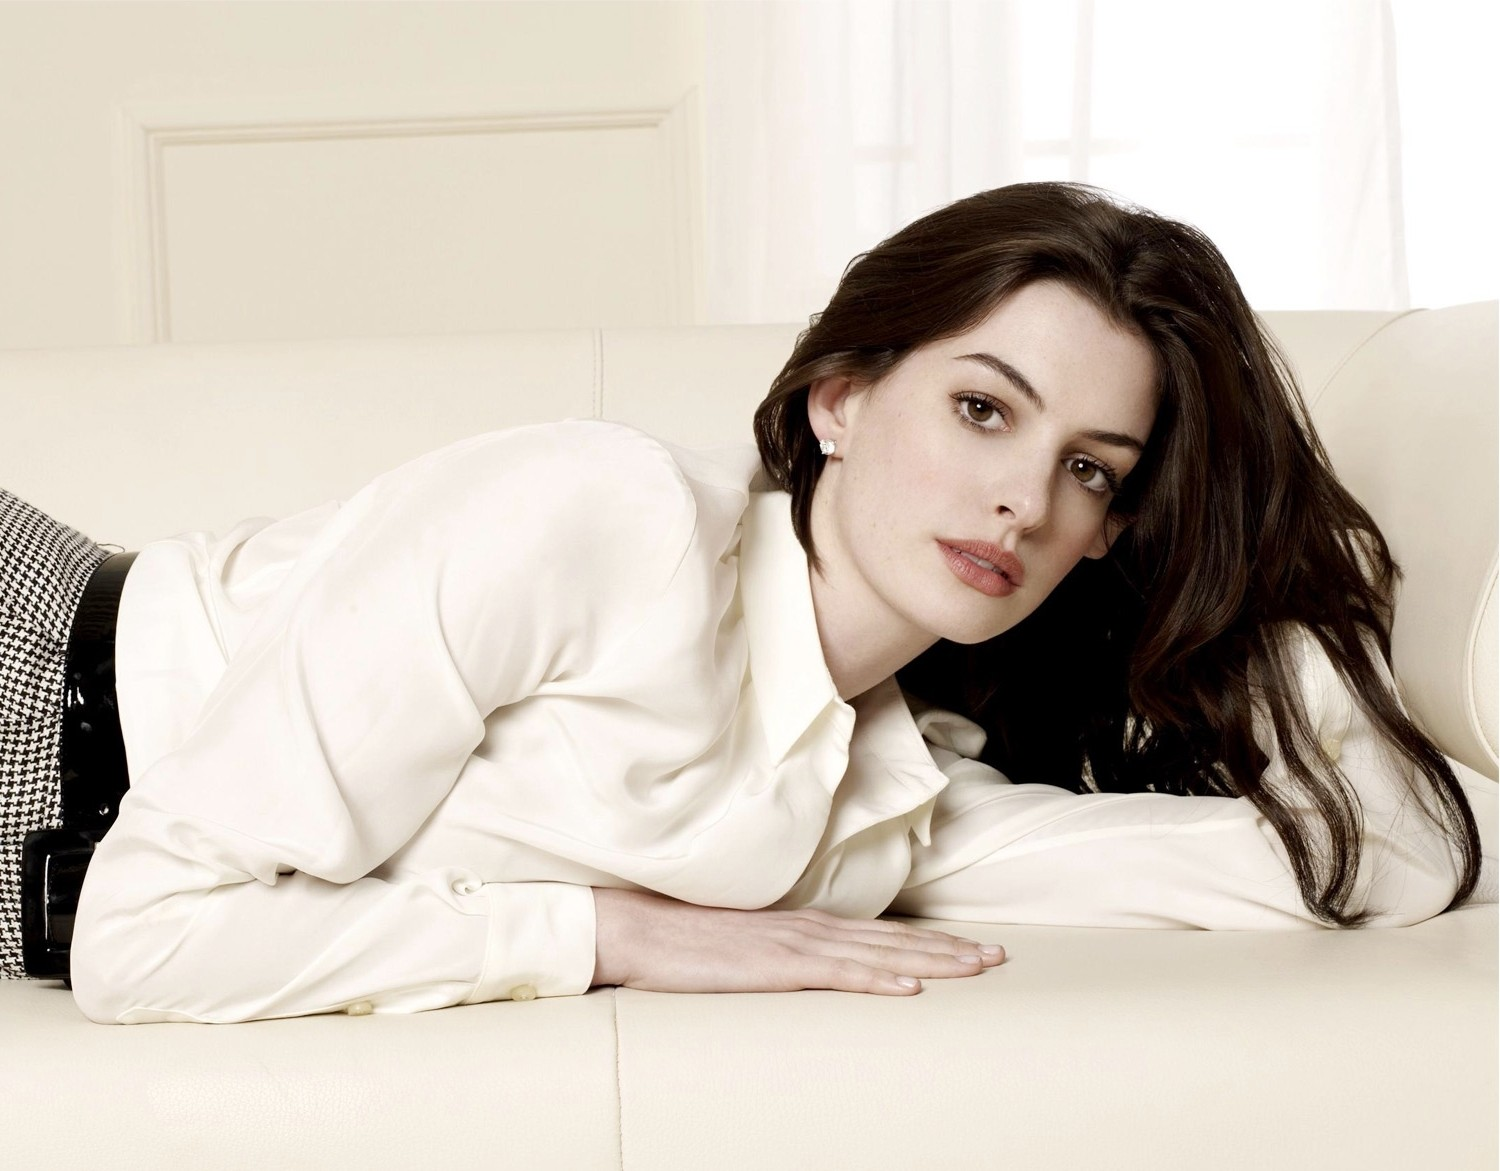 anne hathaway 2015 wallpapers - photo #21